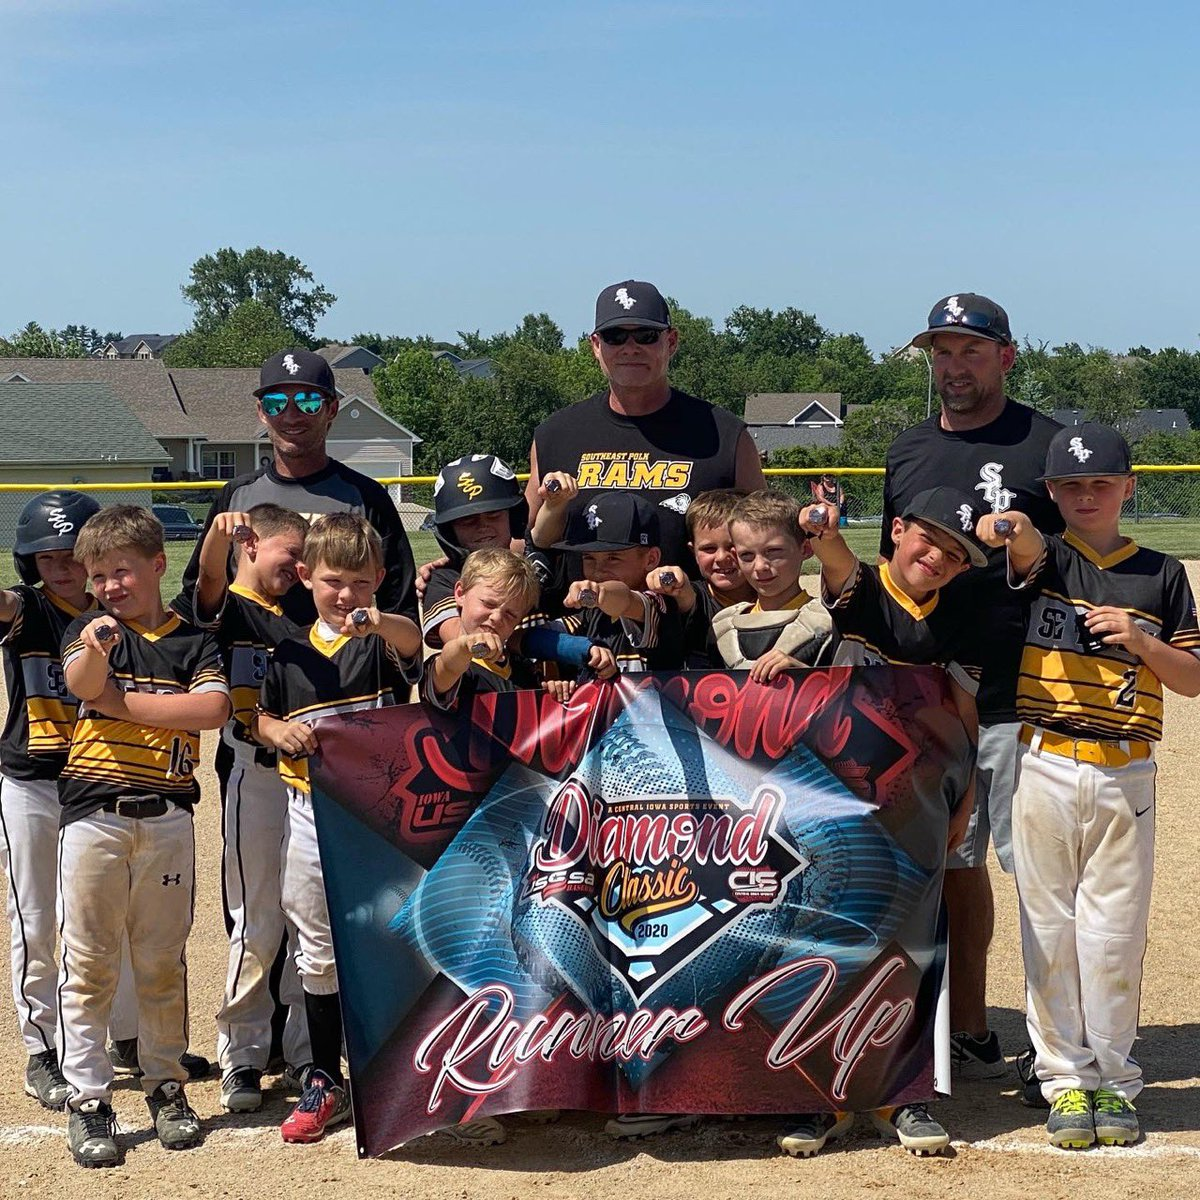 Rams Club 8U Black loses a close one 2-1 to become runner up out of 17 teams in the Diamond Global State! Congratulations!! https://t.co/RQYbDeFNrm